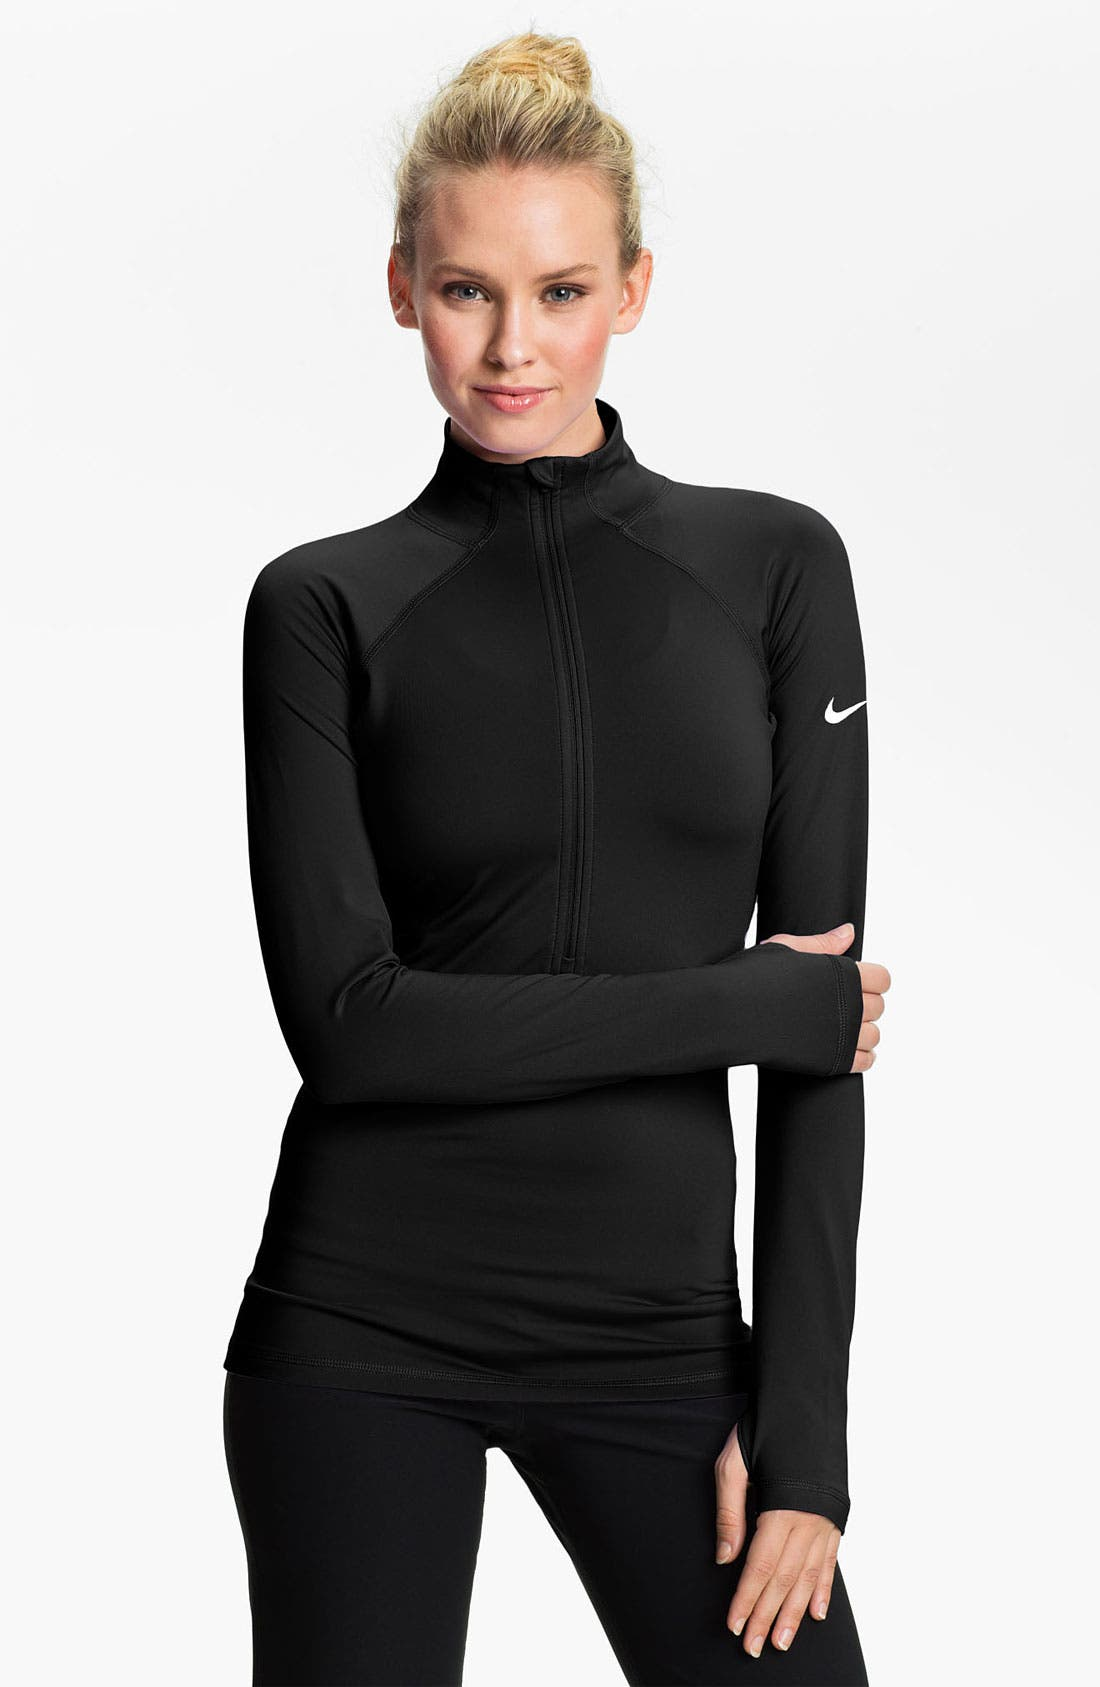 Main Image - Nike 'Pro Hyperwarm' Half Zip Top